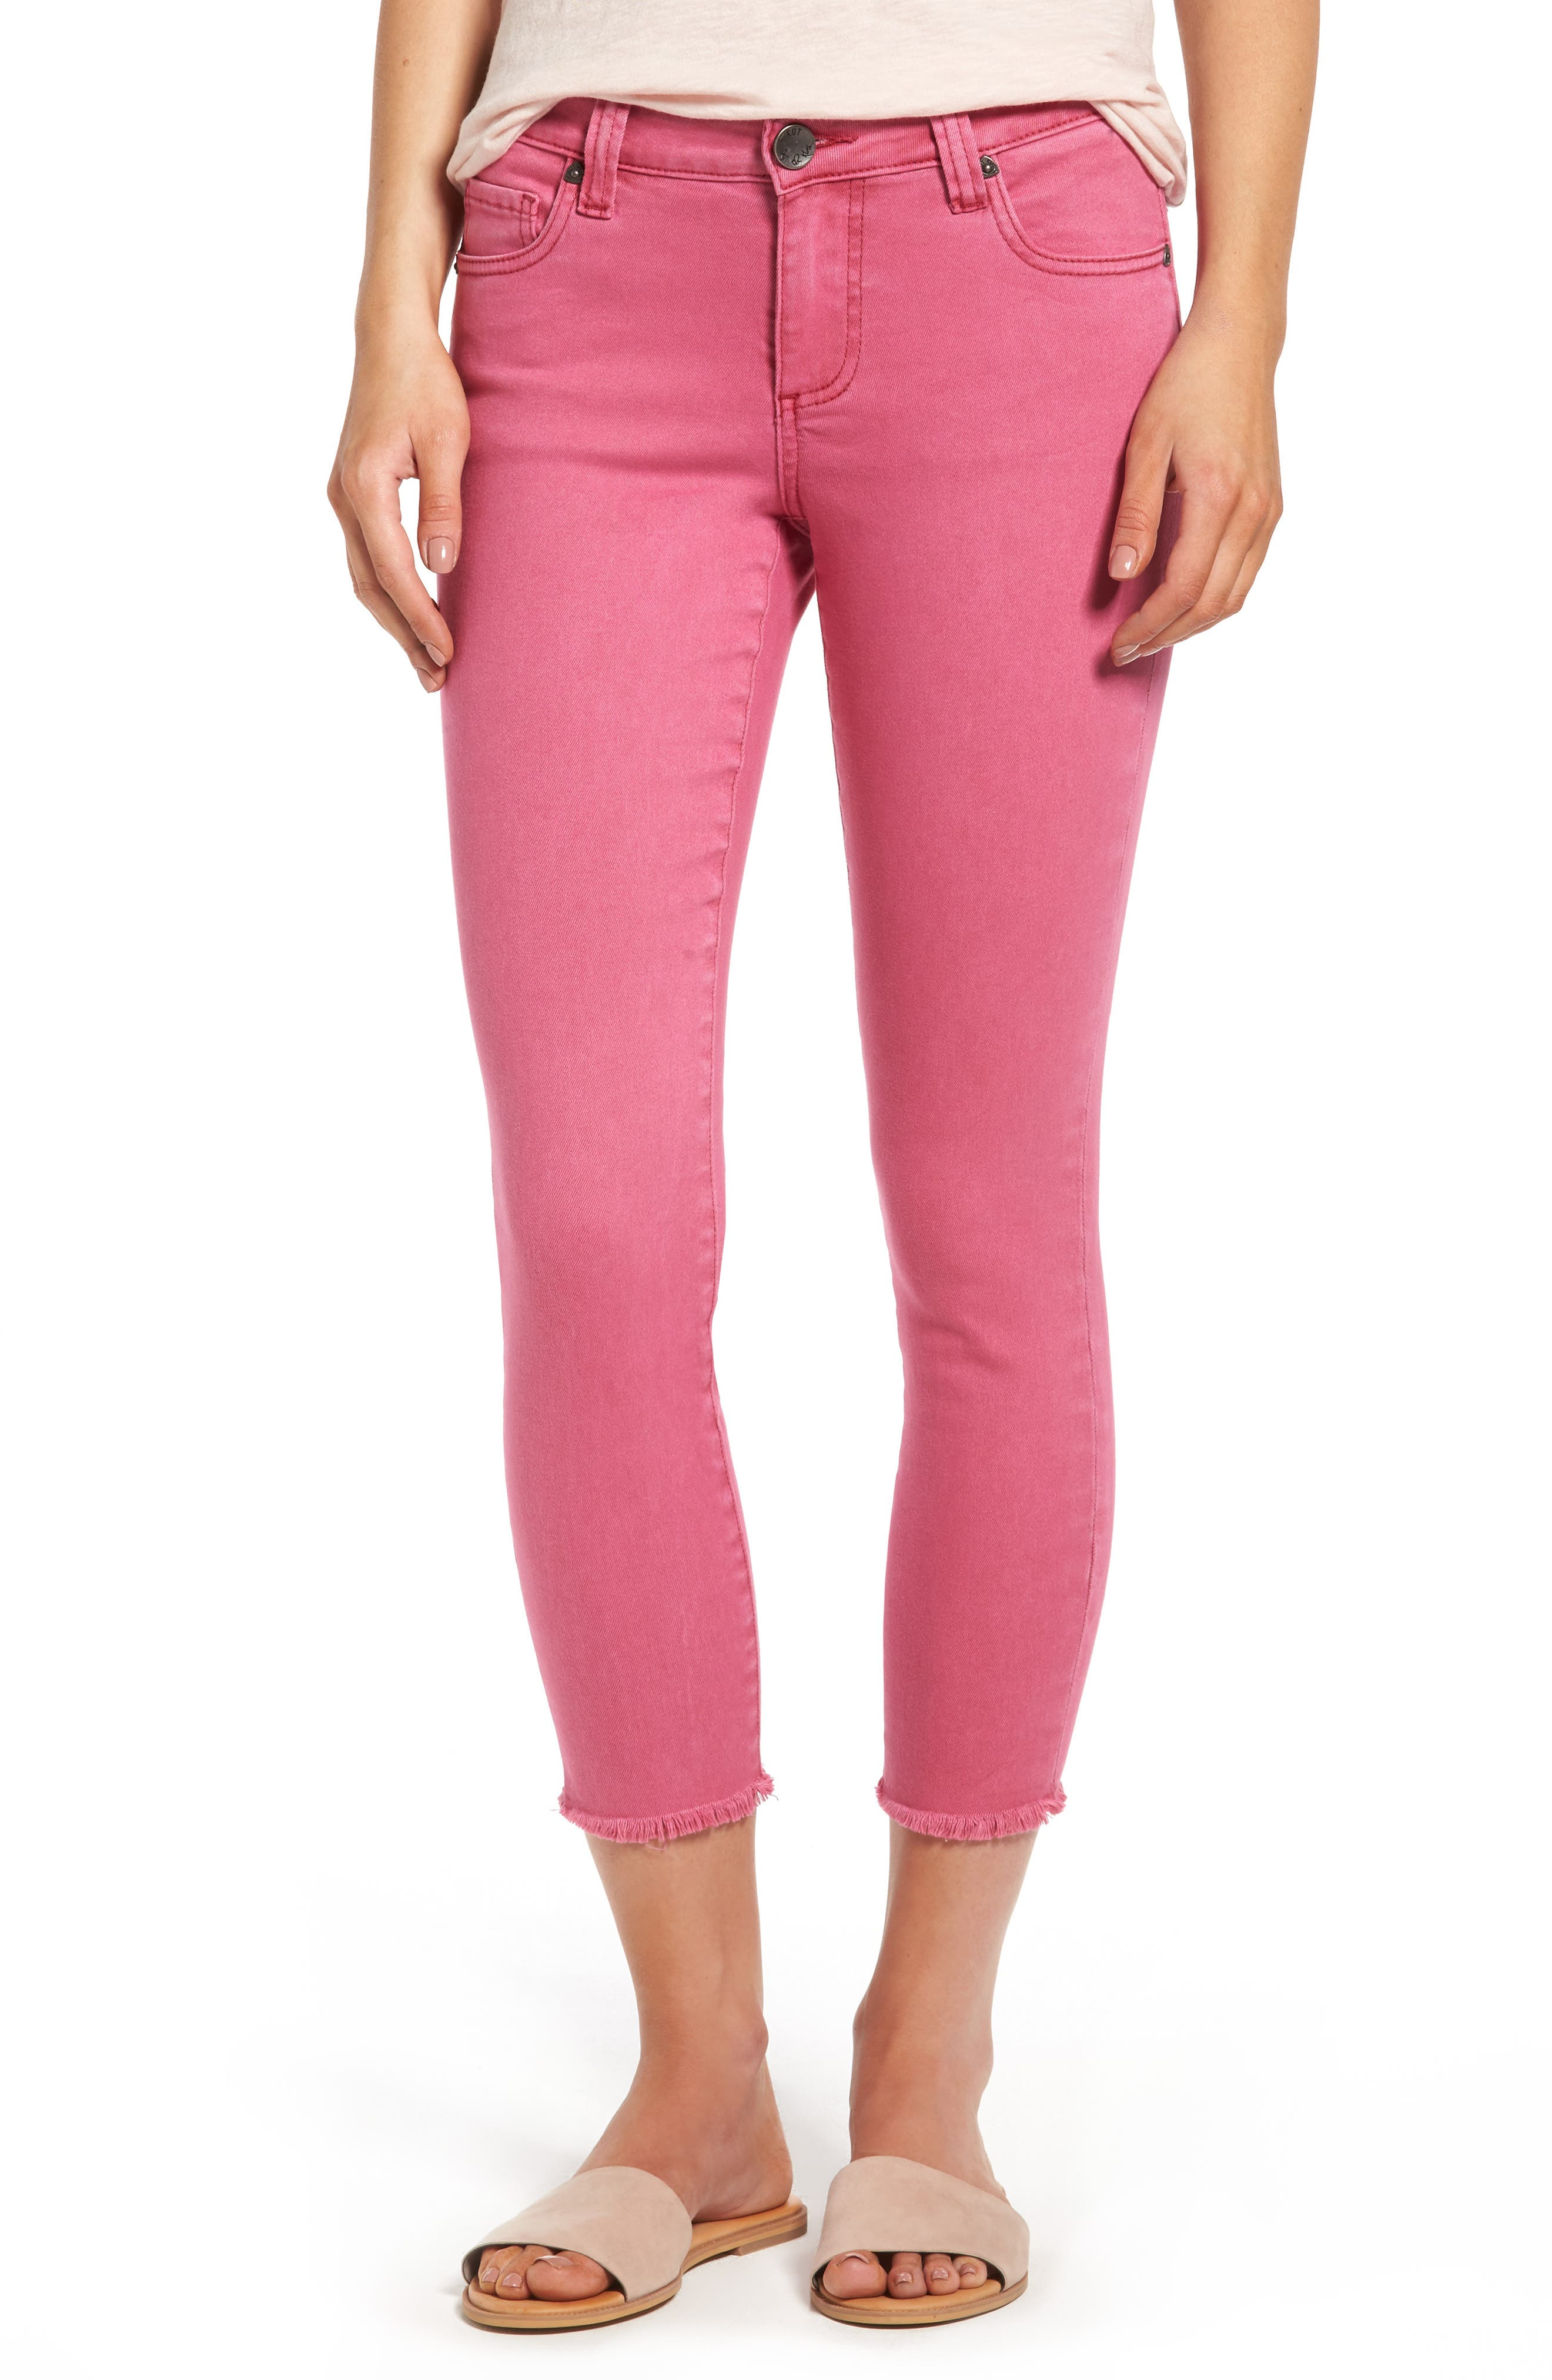 Alternate Image 1 Selected - KUT from the Kloth Connie Frayed Hem Crop Skinny Jeans (Hot Pink)